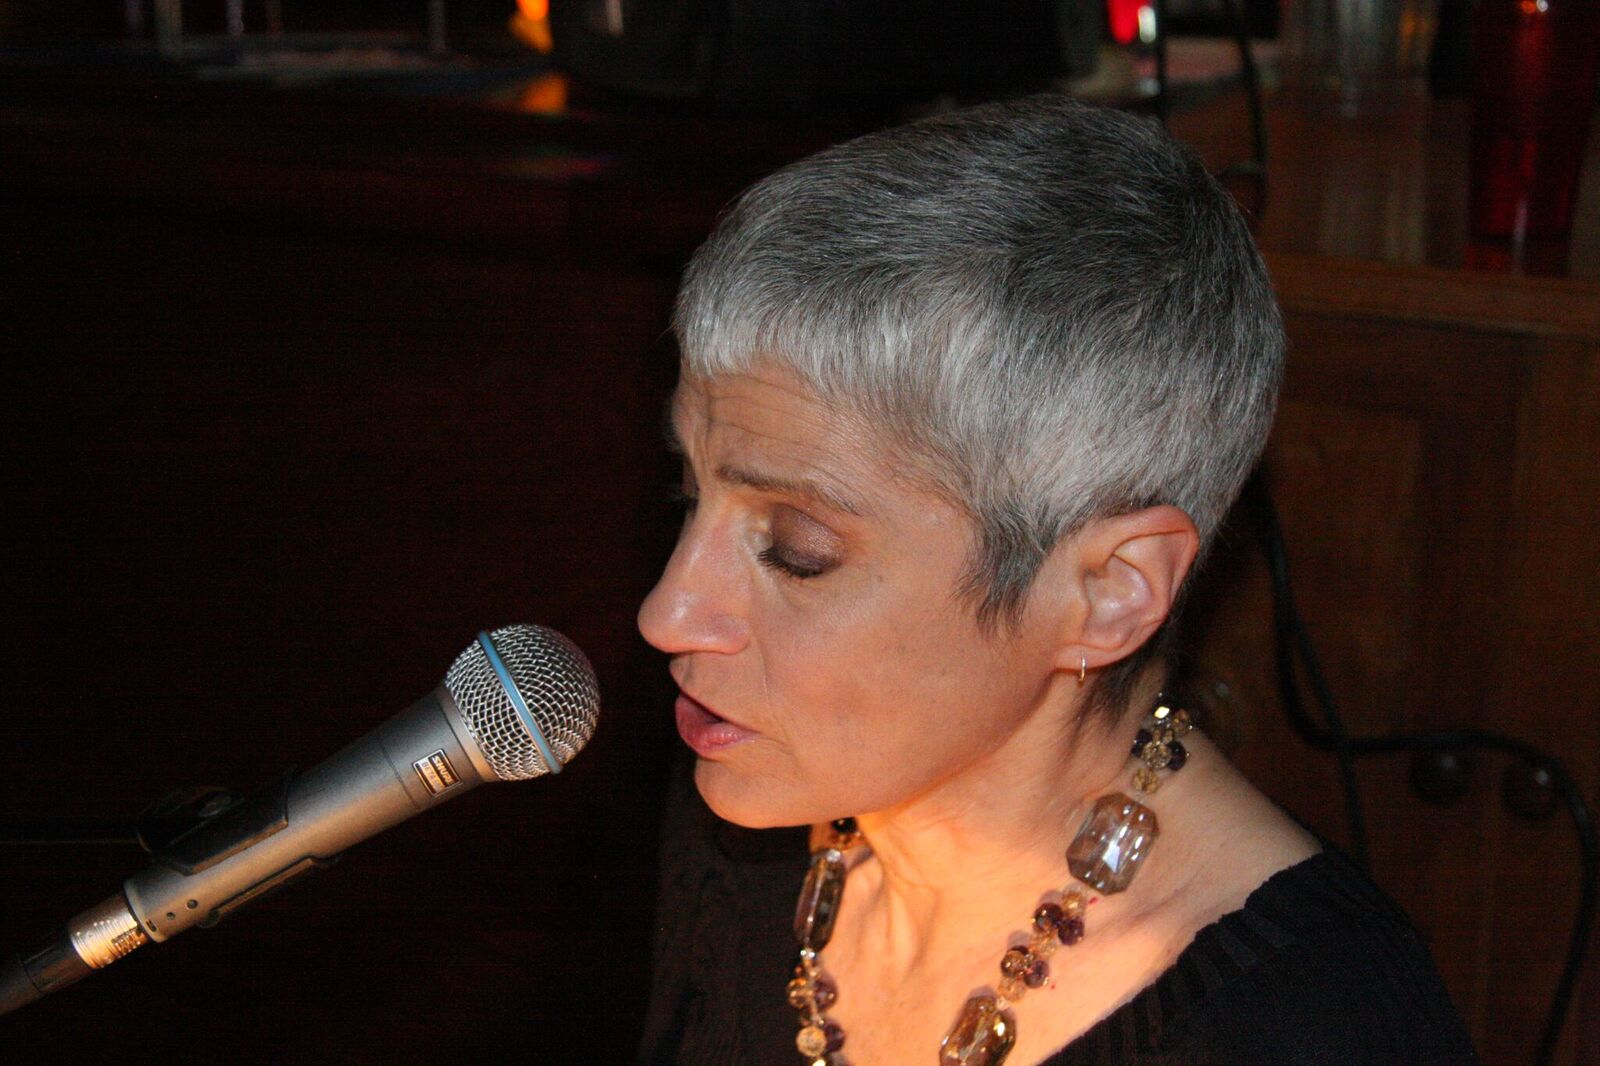 Susan Artemis, vocals & keys